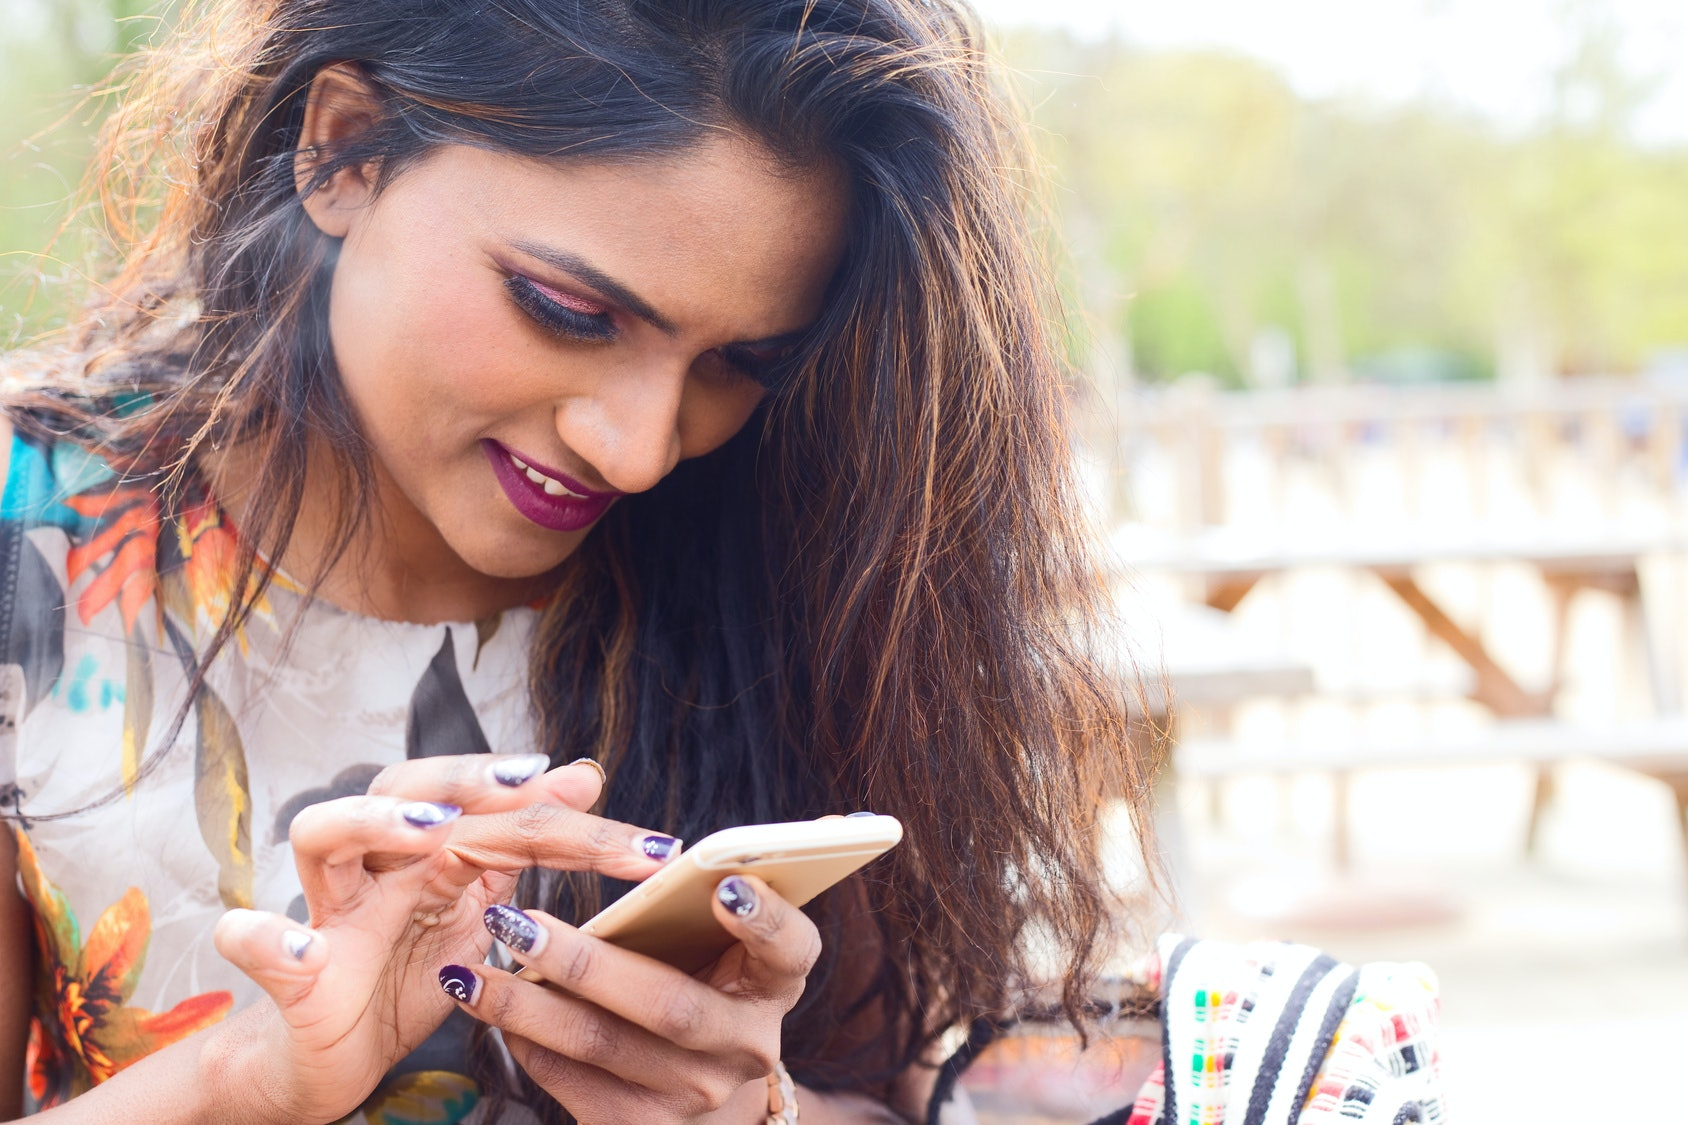 Top sexting apps